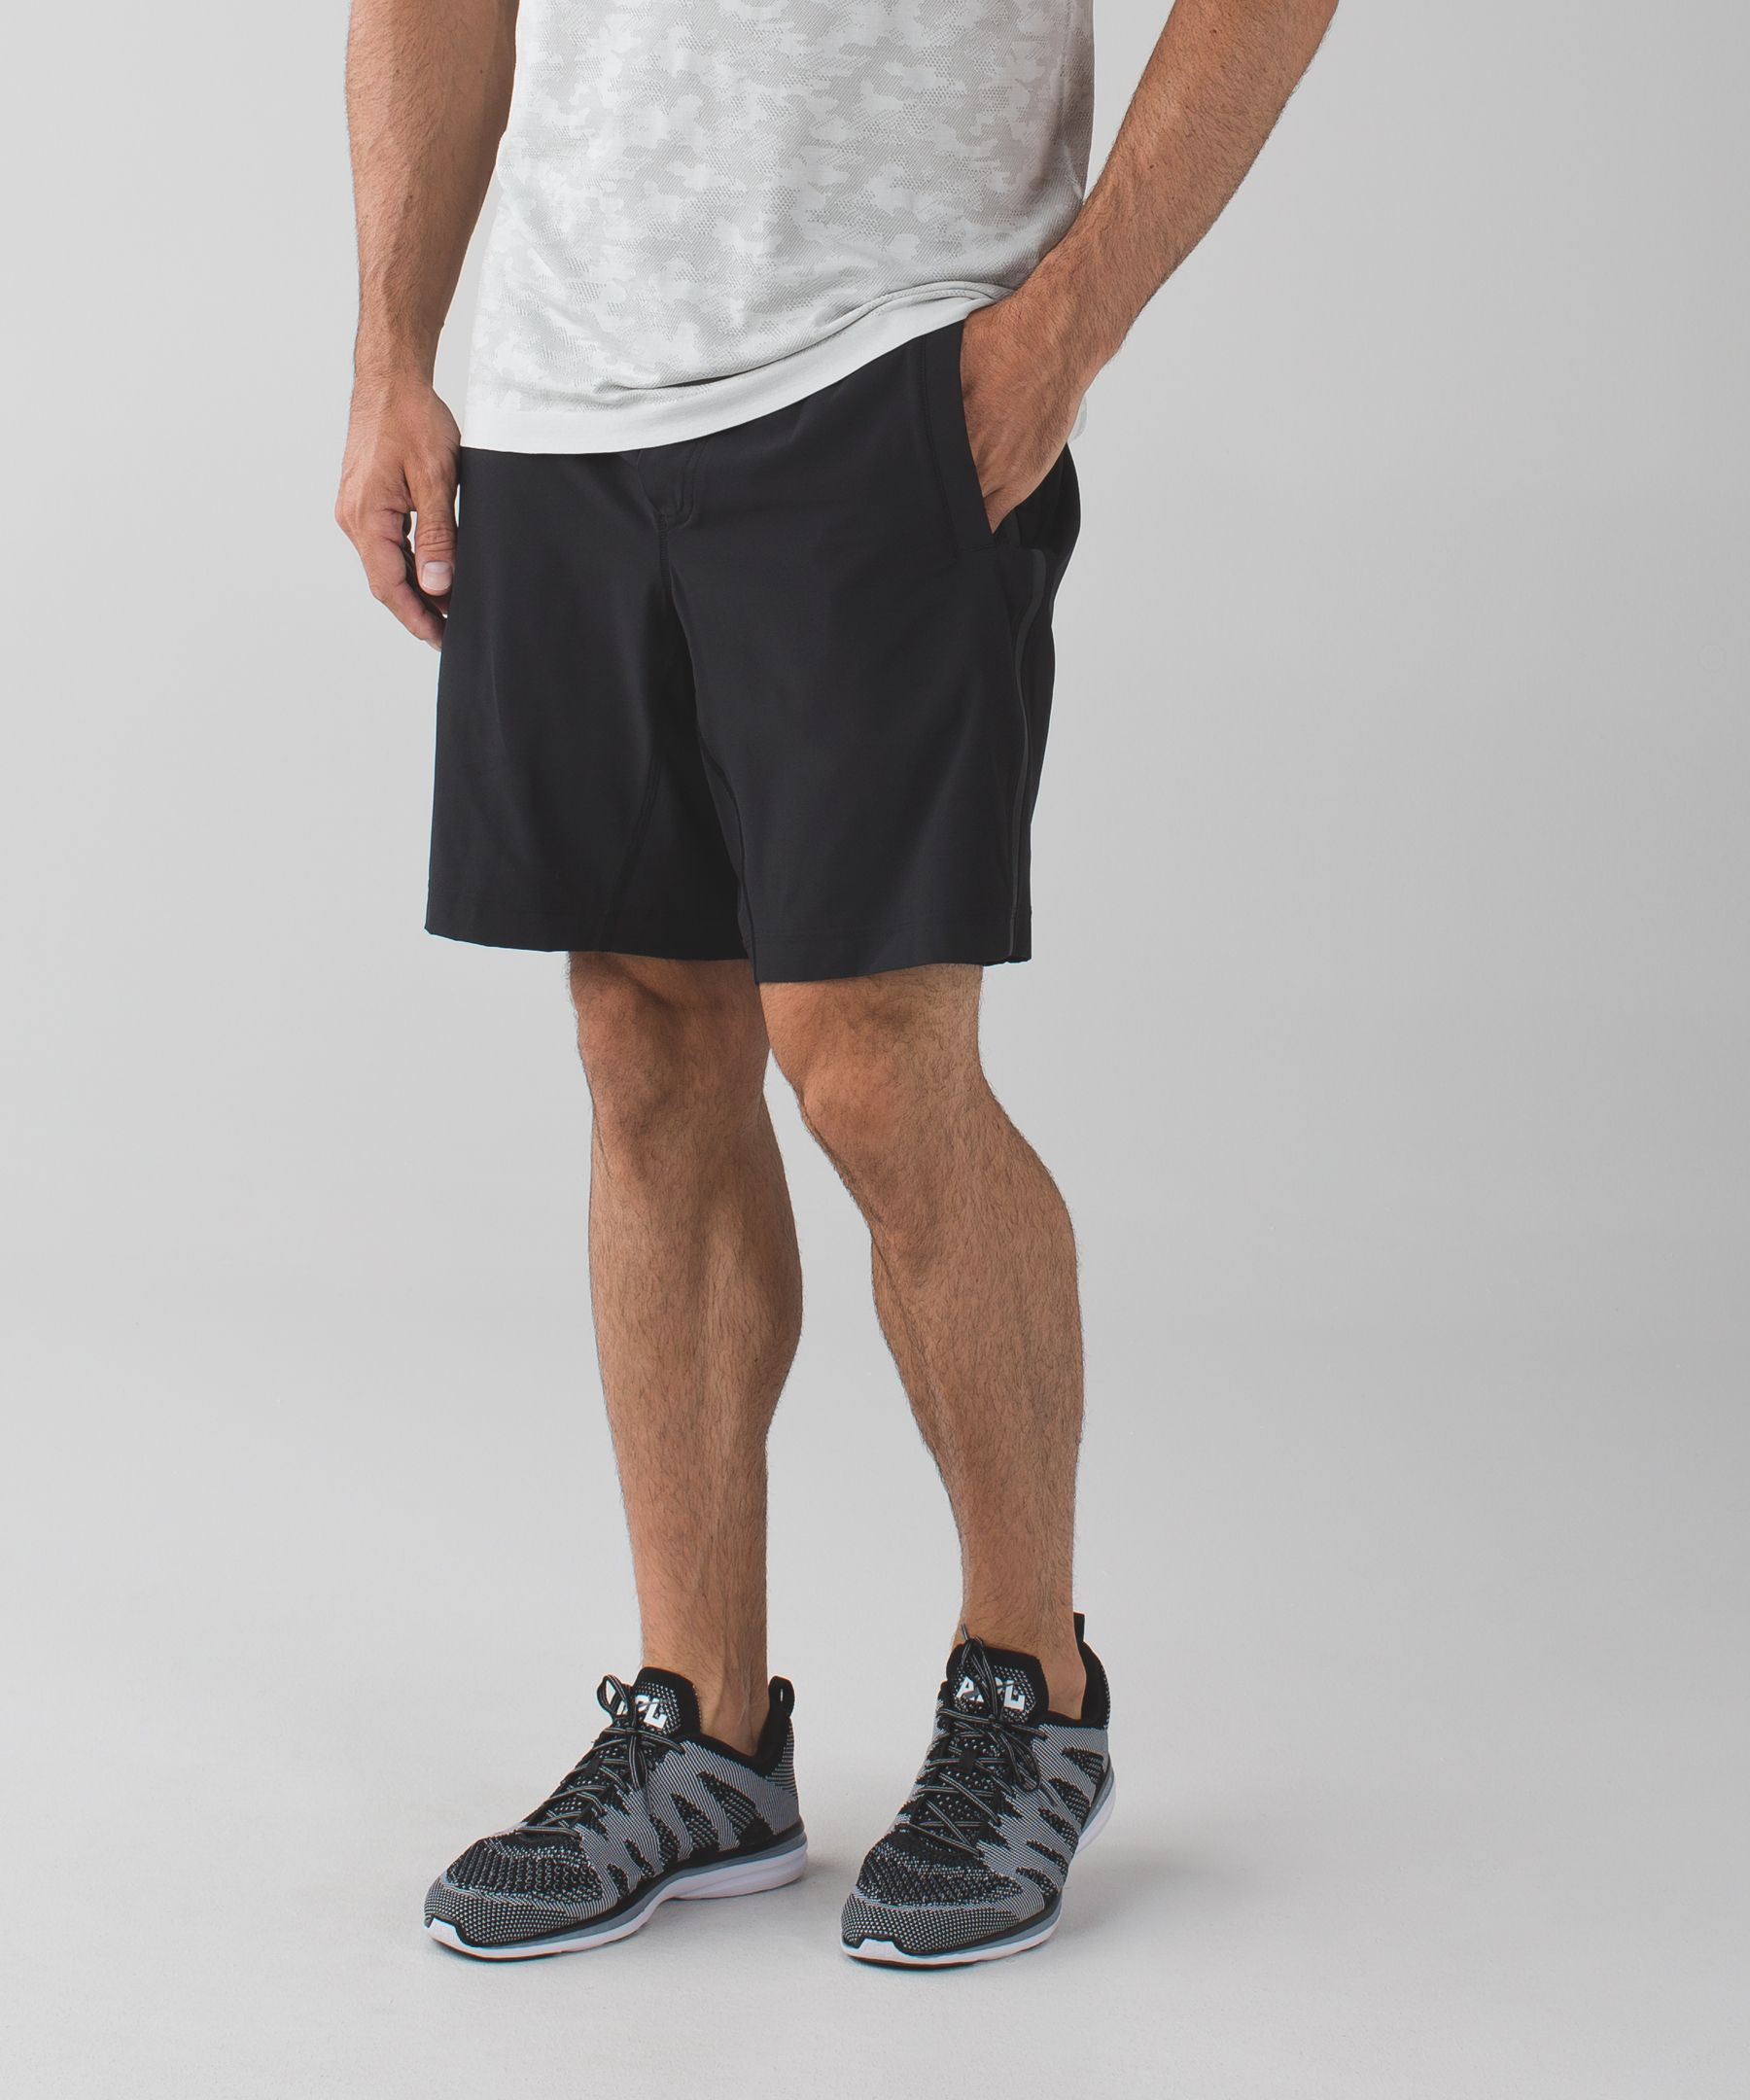 Pace Breaker Short *Luxtreme Liner - Online Only